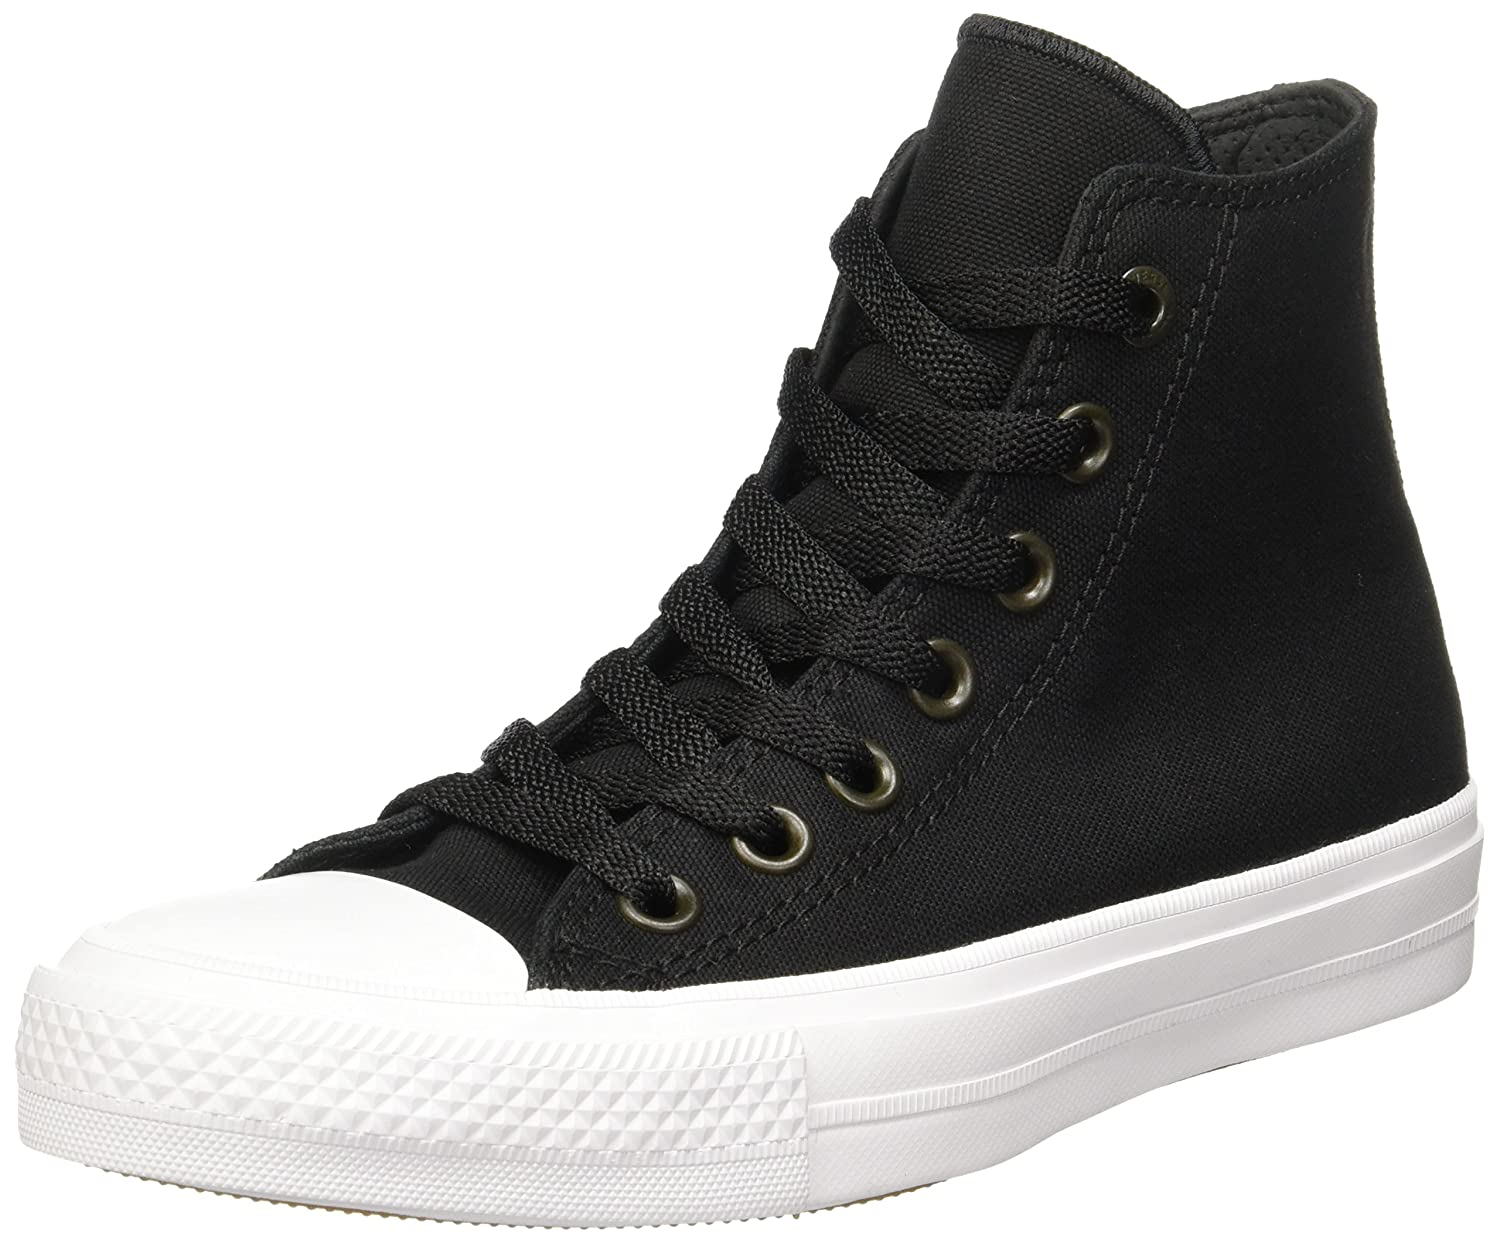 e3befff65d81 Converse Chuck Taylor All Star II Black White 10.5 B(M) US Women   8.5 D(M)  US Men  Buy Online at Low Prices in India - Amazon.in